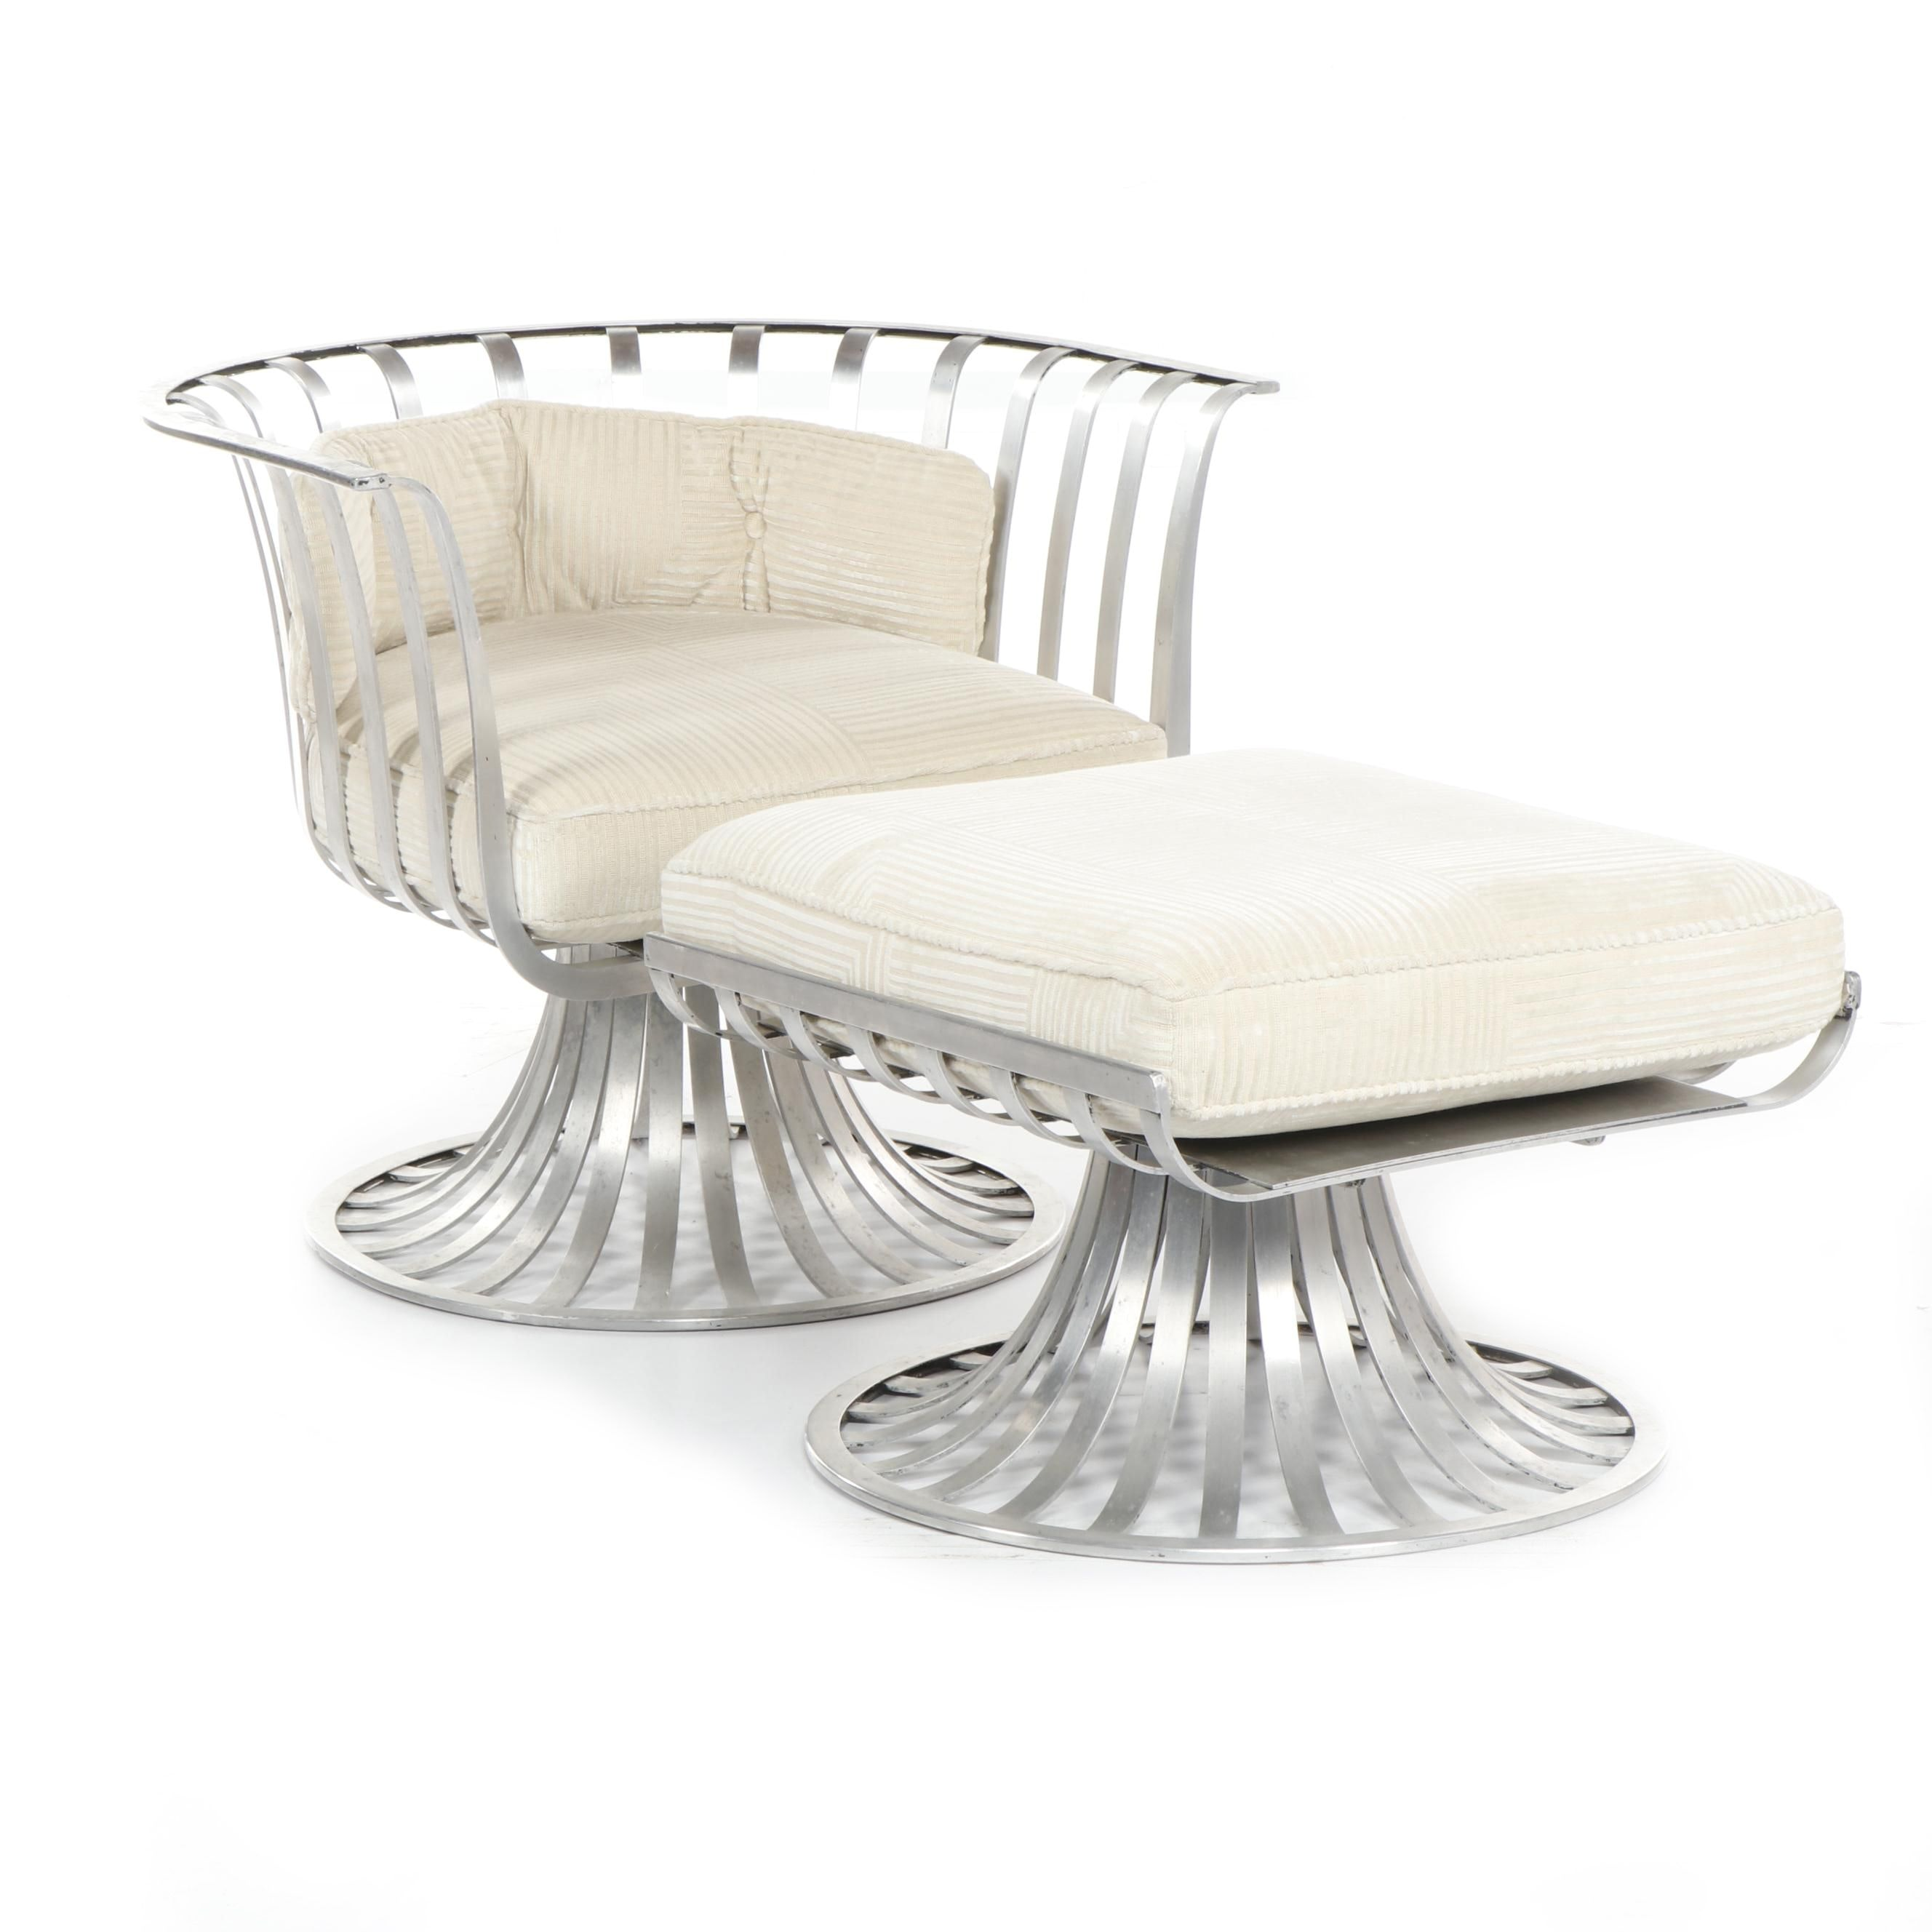 Russell Woodard Modern Aluminum Chair and Ottoman, 1960s